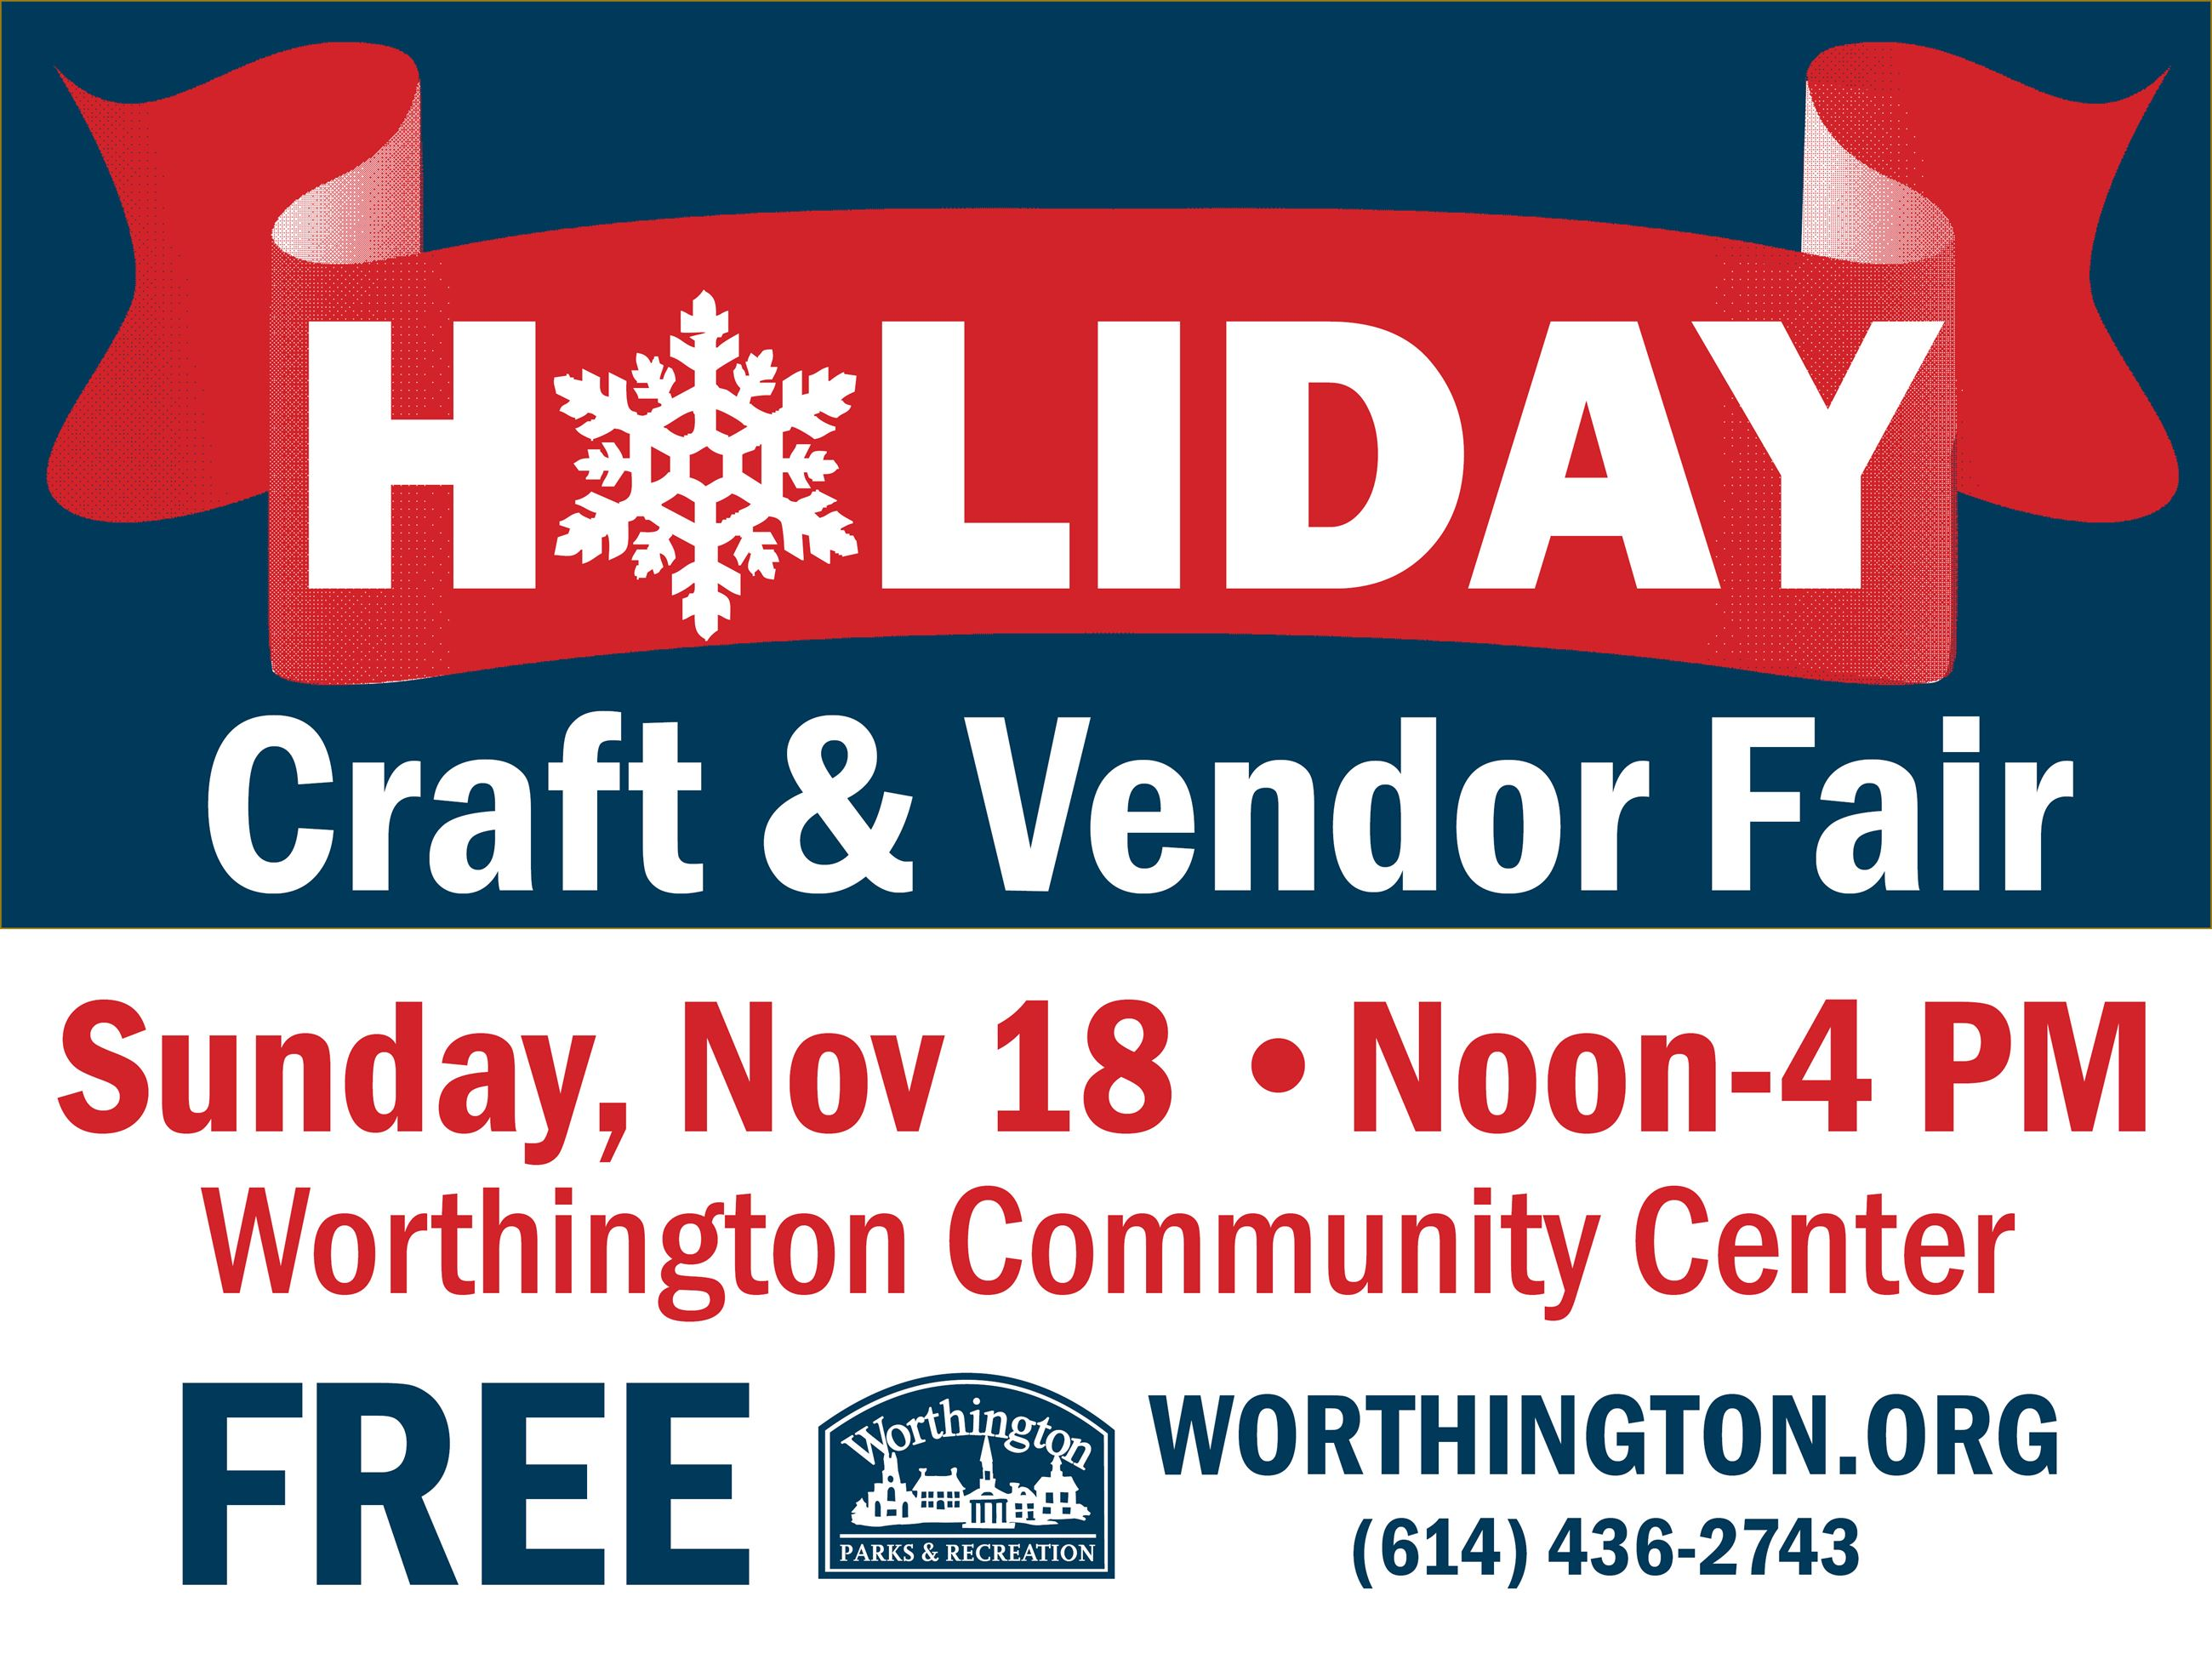 holiday vendor fair yard sign 2018